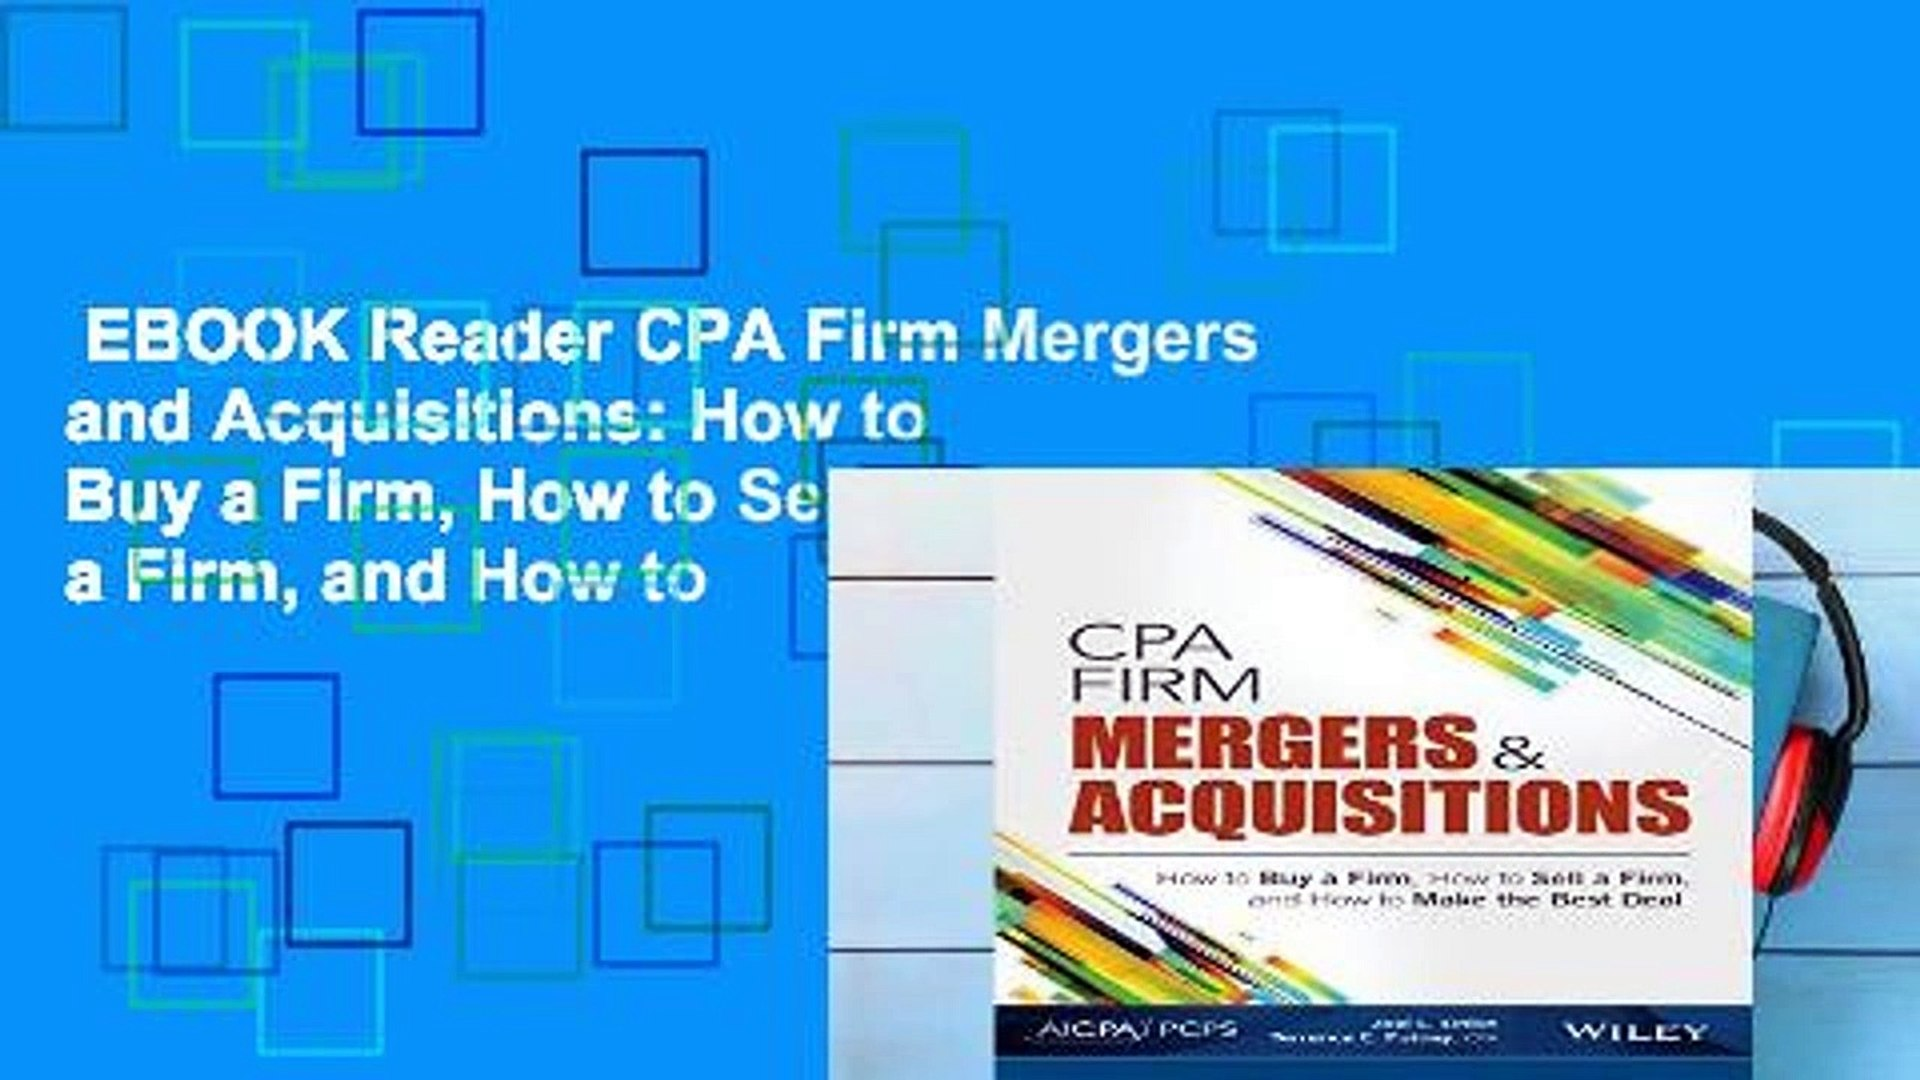 EBOOK Reader CPA Firm Mergers and Acquisitions: How to Buy a Firm, How to Sell a Firm, and How to